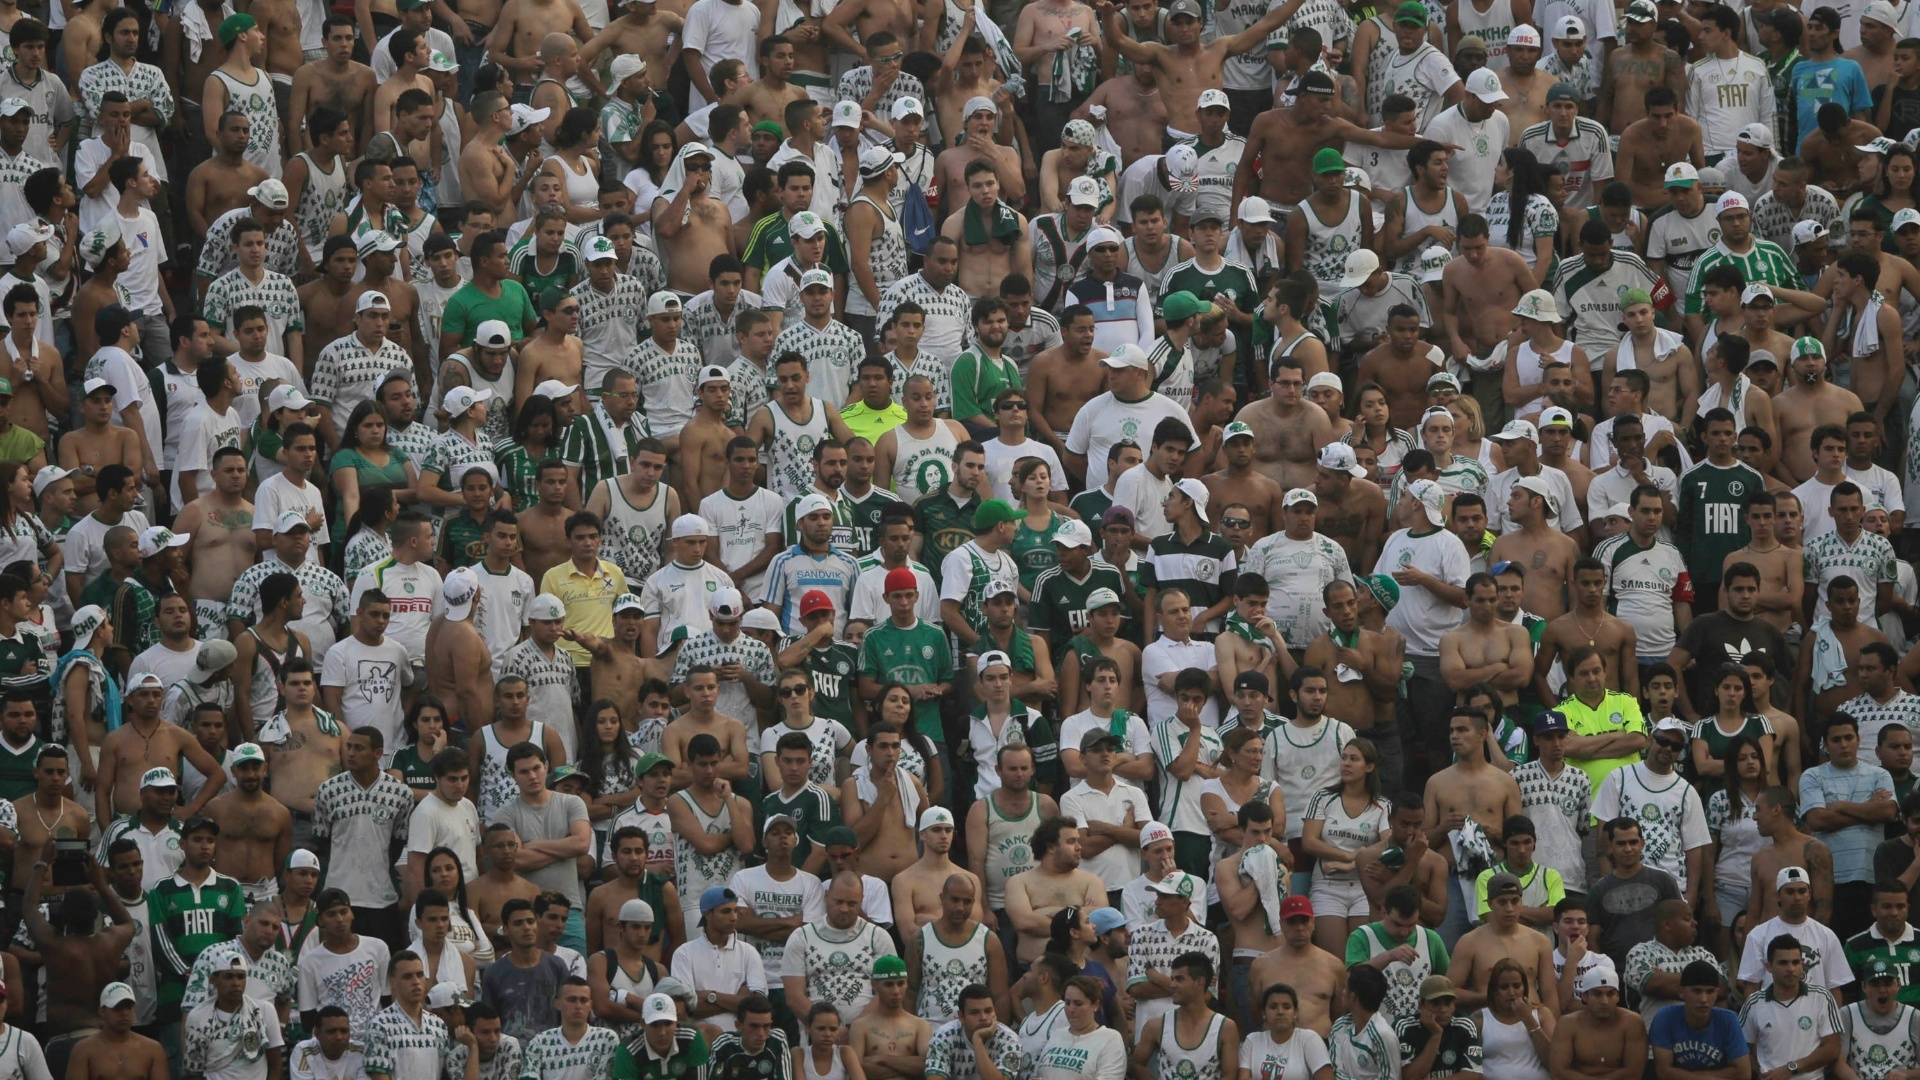 Torcida do Palmeiras lamenta derrota para o So Paulo no Morumbi